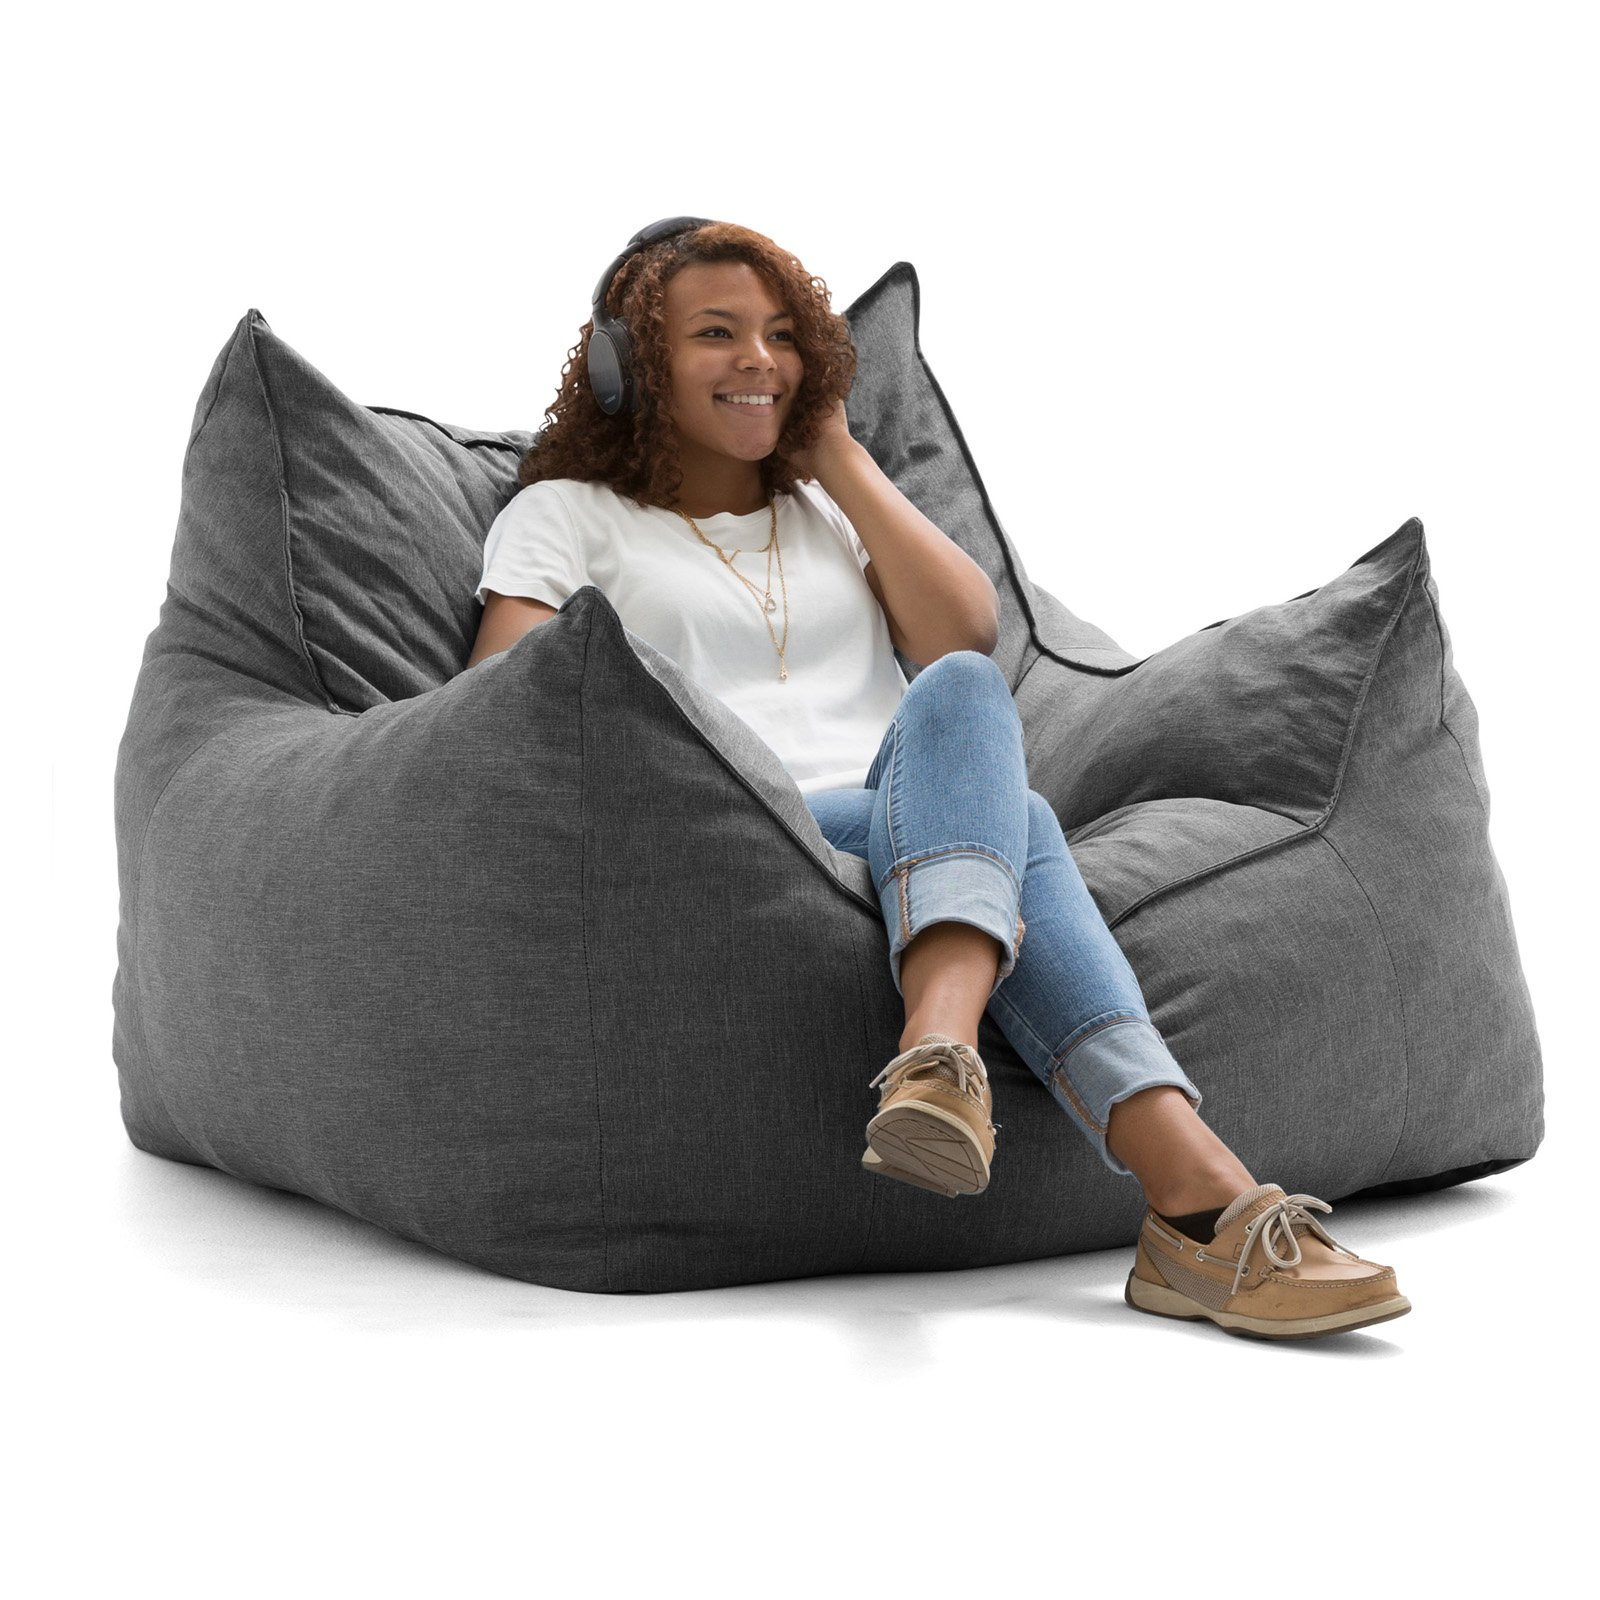 Lux by Big Joe Imperial Lounger Union Bean Bag